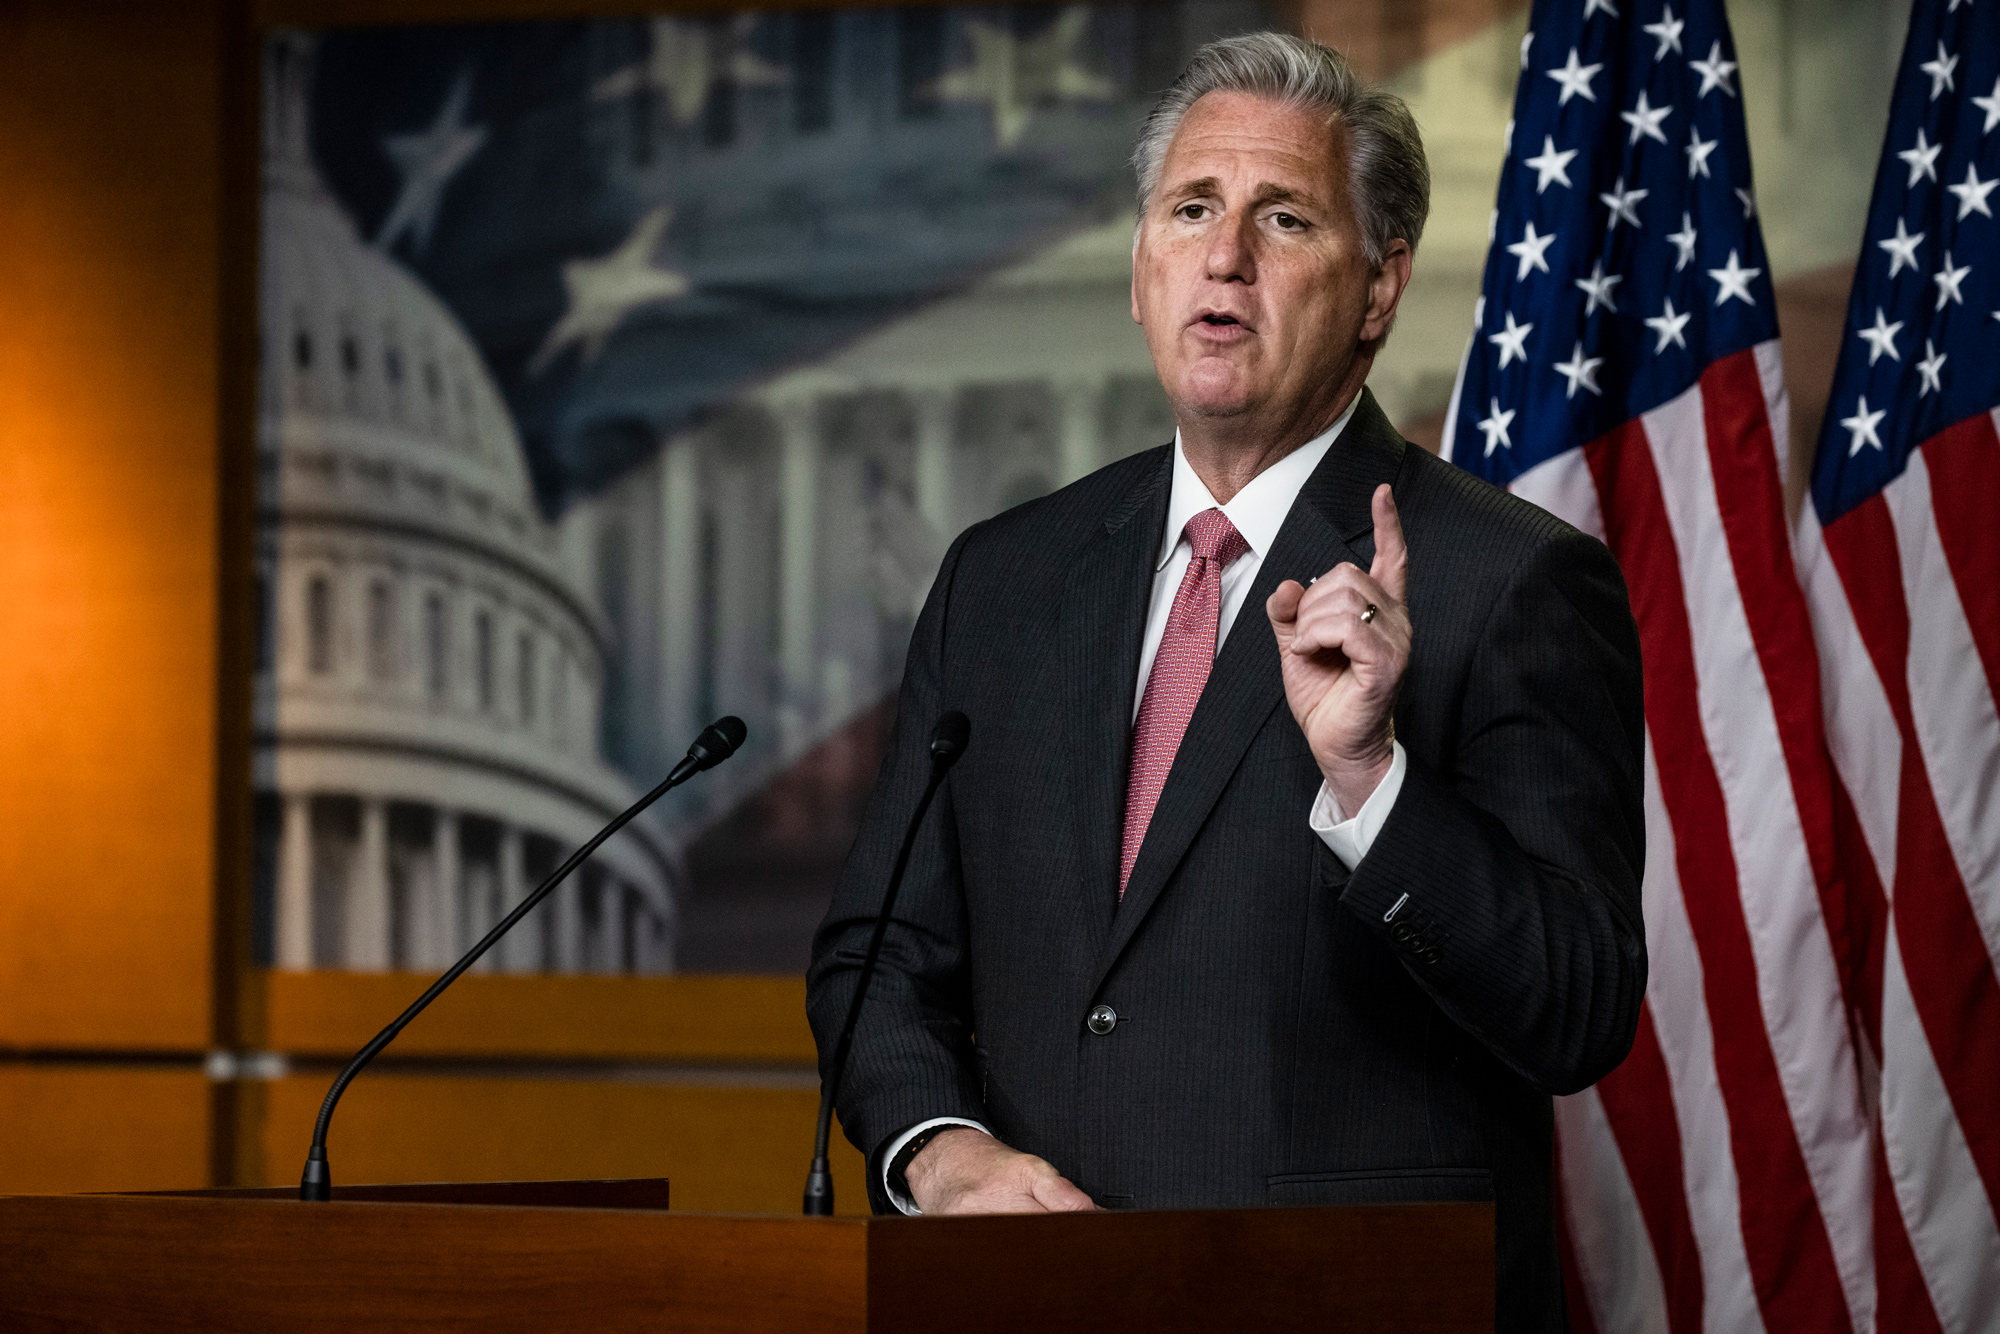 House Minority Leader Kevin McCarthy speaks during a press conference at the U.S. Capitol on November 12 in Washington, DC.